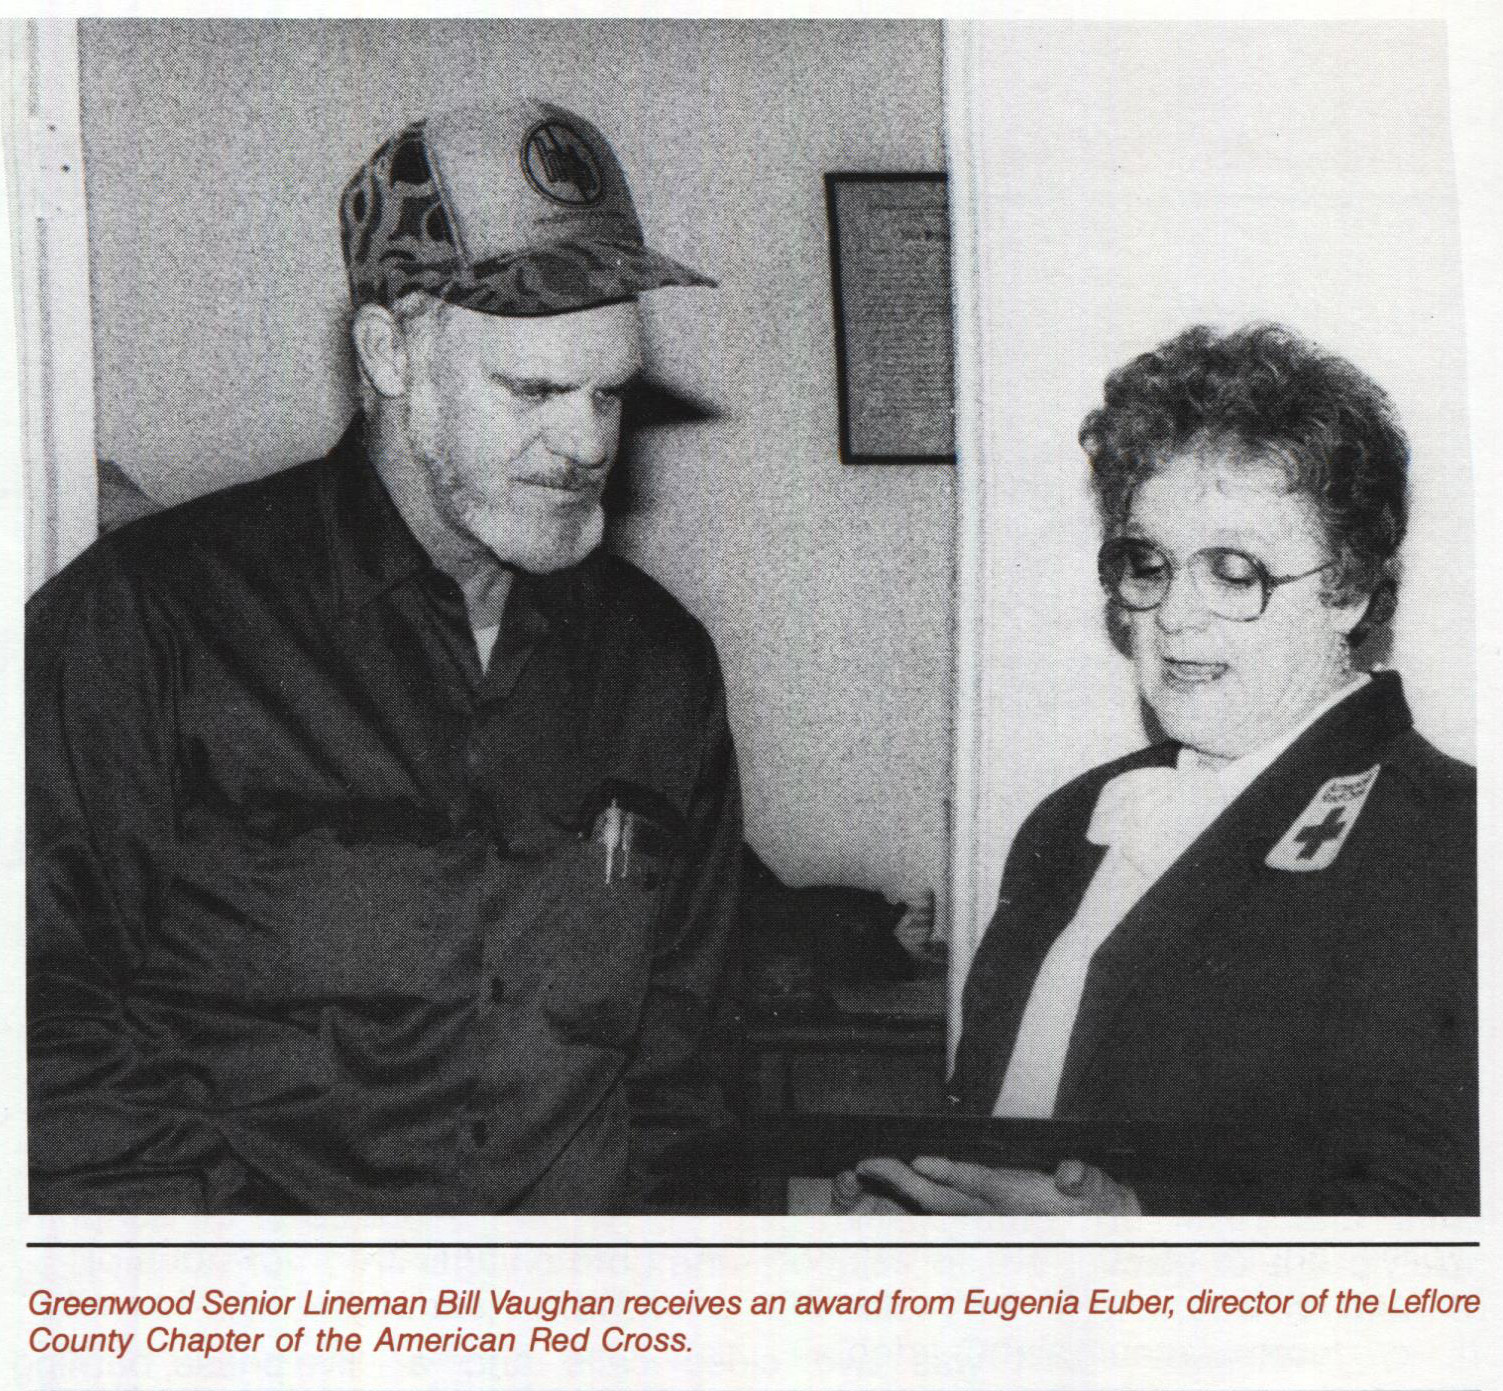 From our archives, Bill Vaughan receives an award for helping to save a colleague's life.